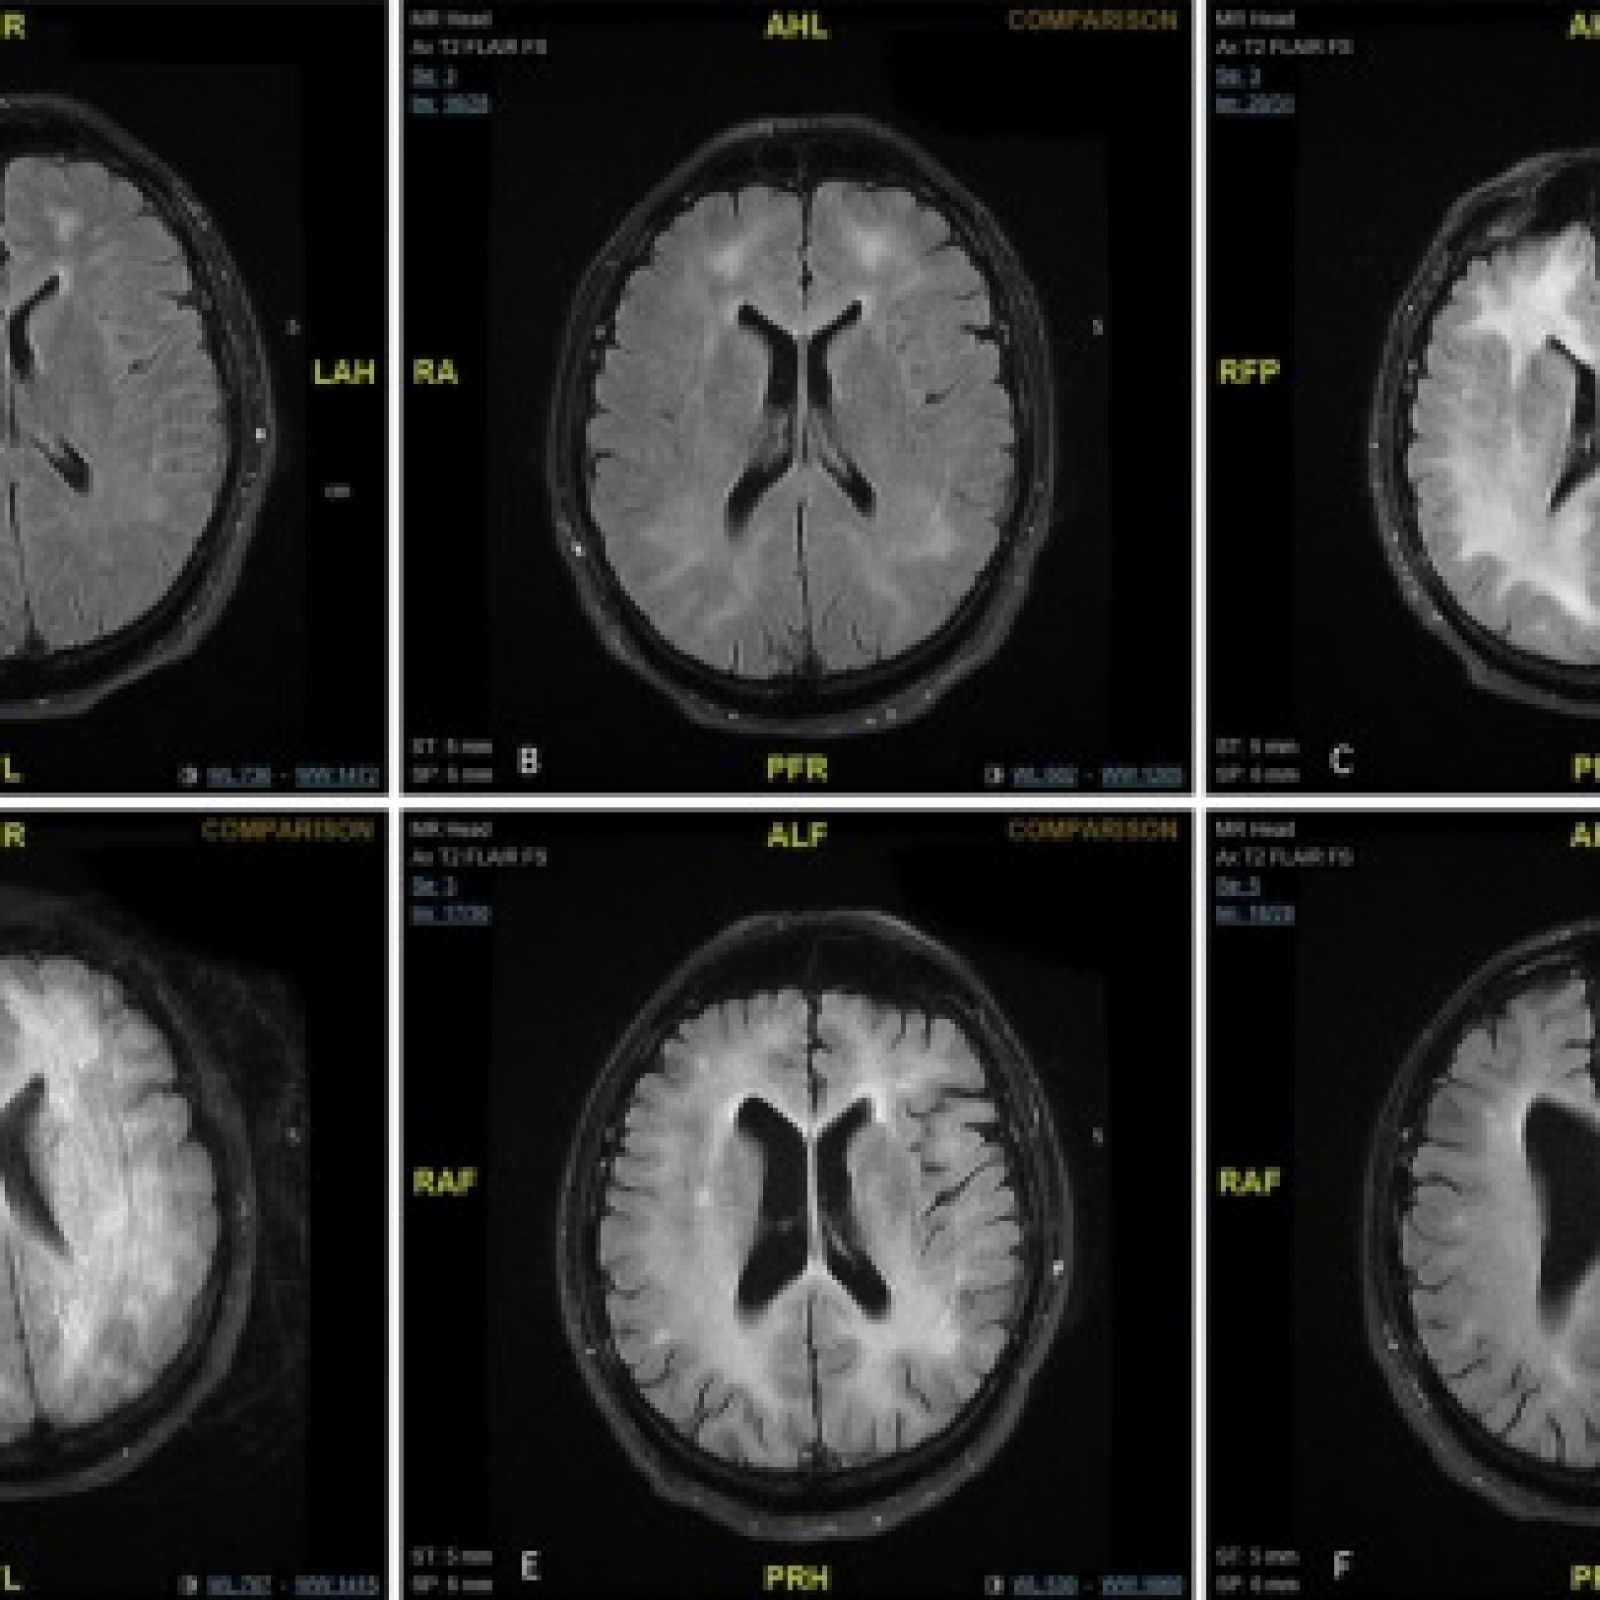 Scans Show Possible Link Between Brain >> Horrifying Mri Scans Show Brain Of Cocaine User Who Entered